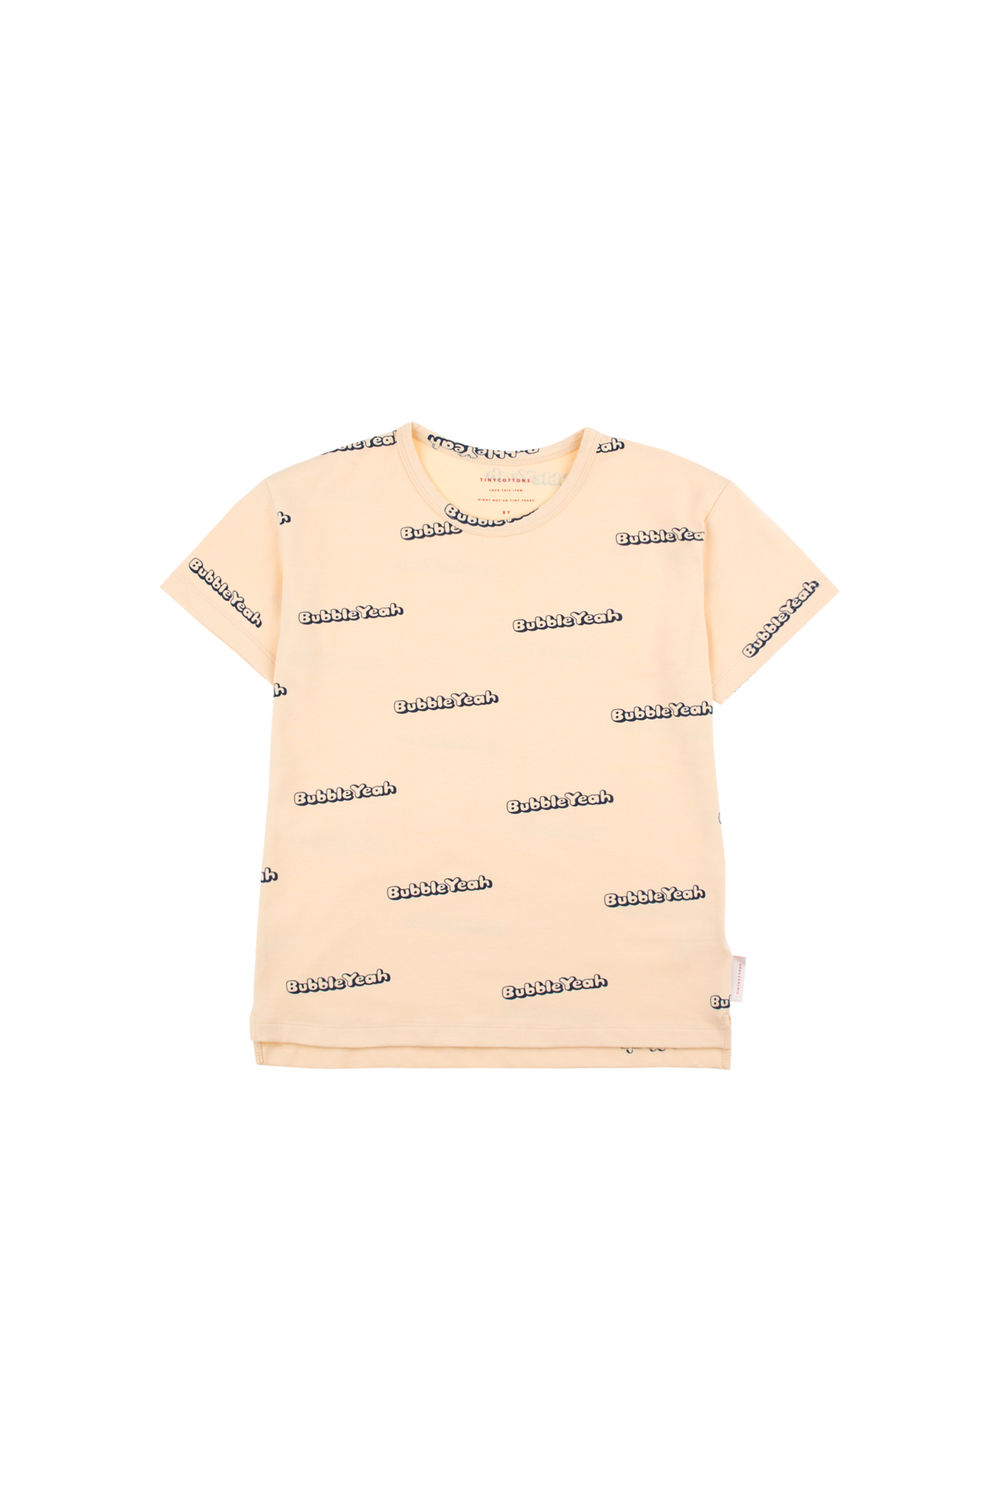 TINY COTTONS, BUBBLE YEAH T-SHIRT, CREAM/NAVY